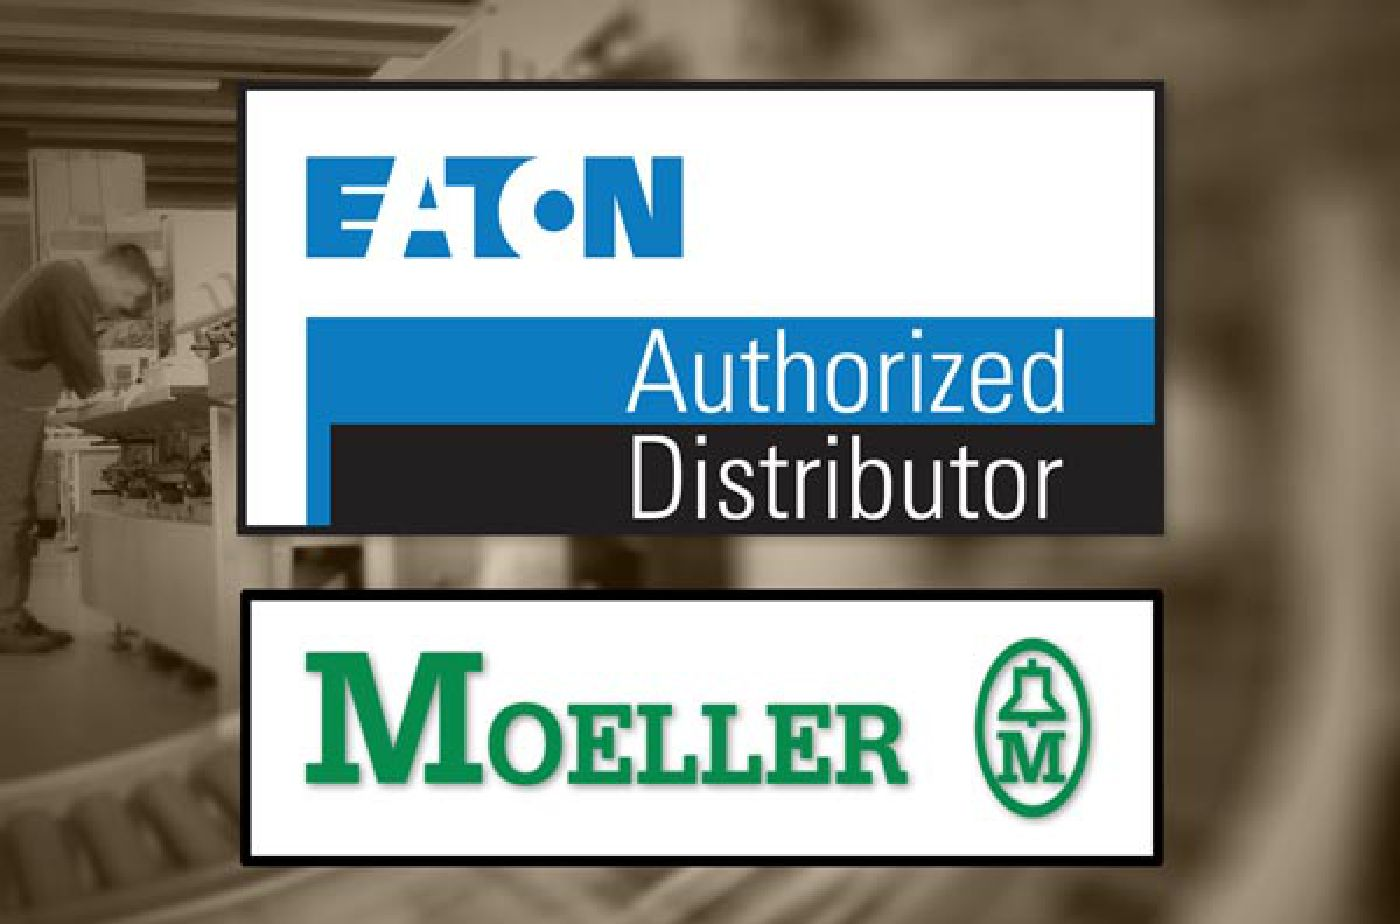 Kmpartscom Industrial Electrical Motor Control Machine Automation Eaton Current Relay Authorized Moeller Distributor